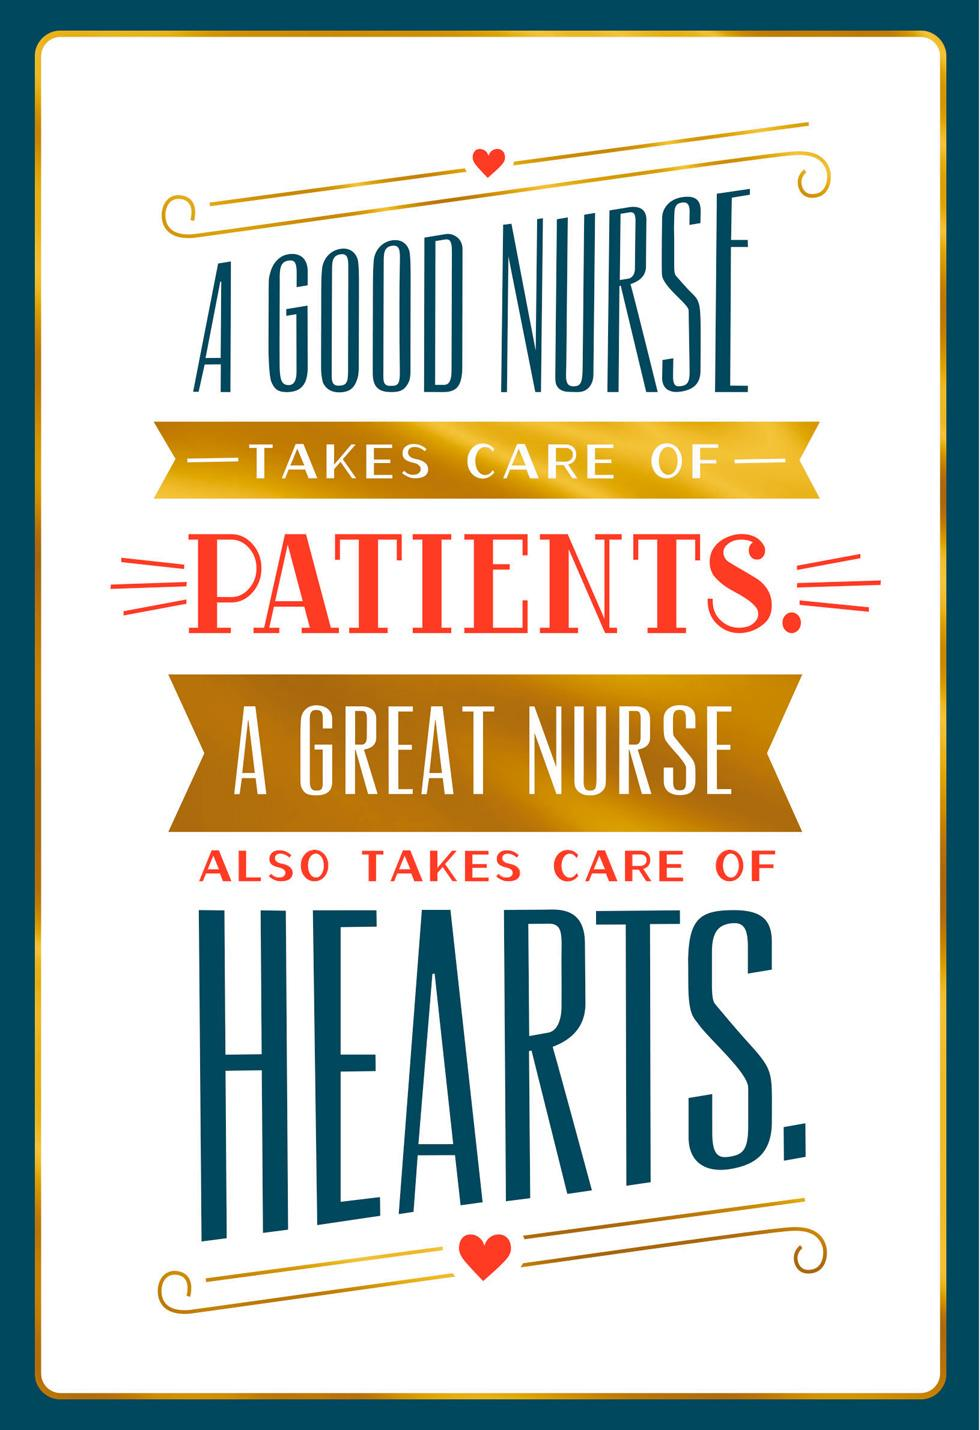 Nurses day cards and gifts hallmark thanks for being great nurses day card kristyandbryce Image collections